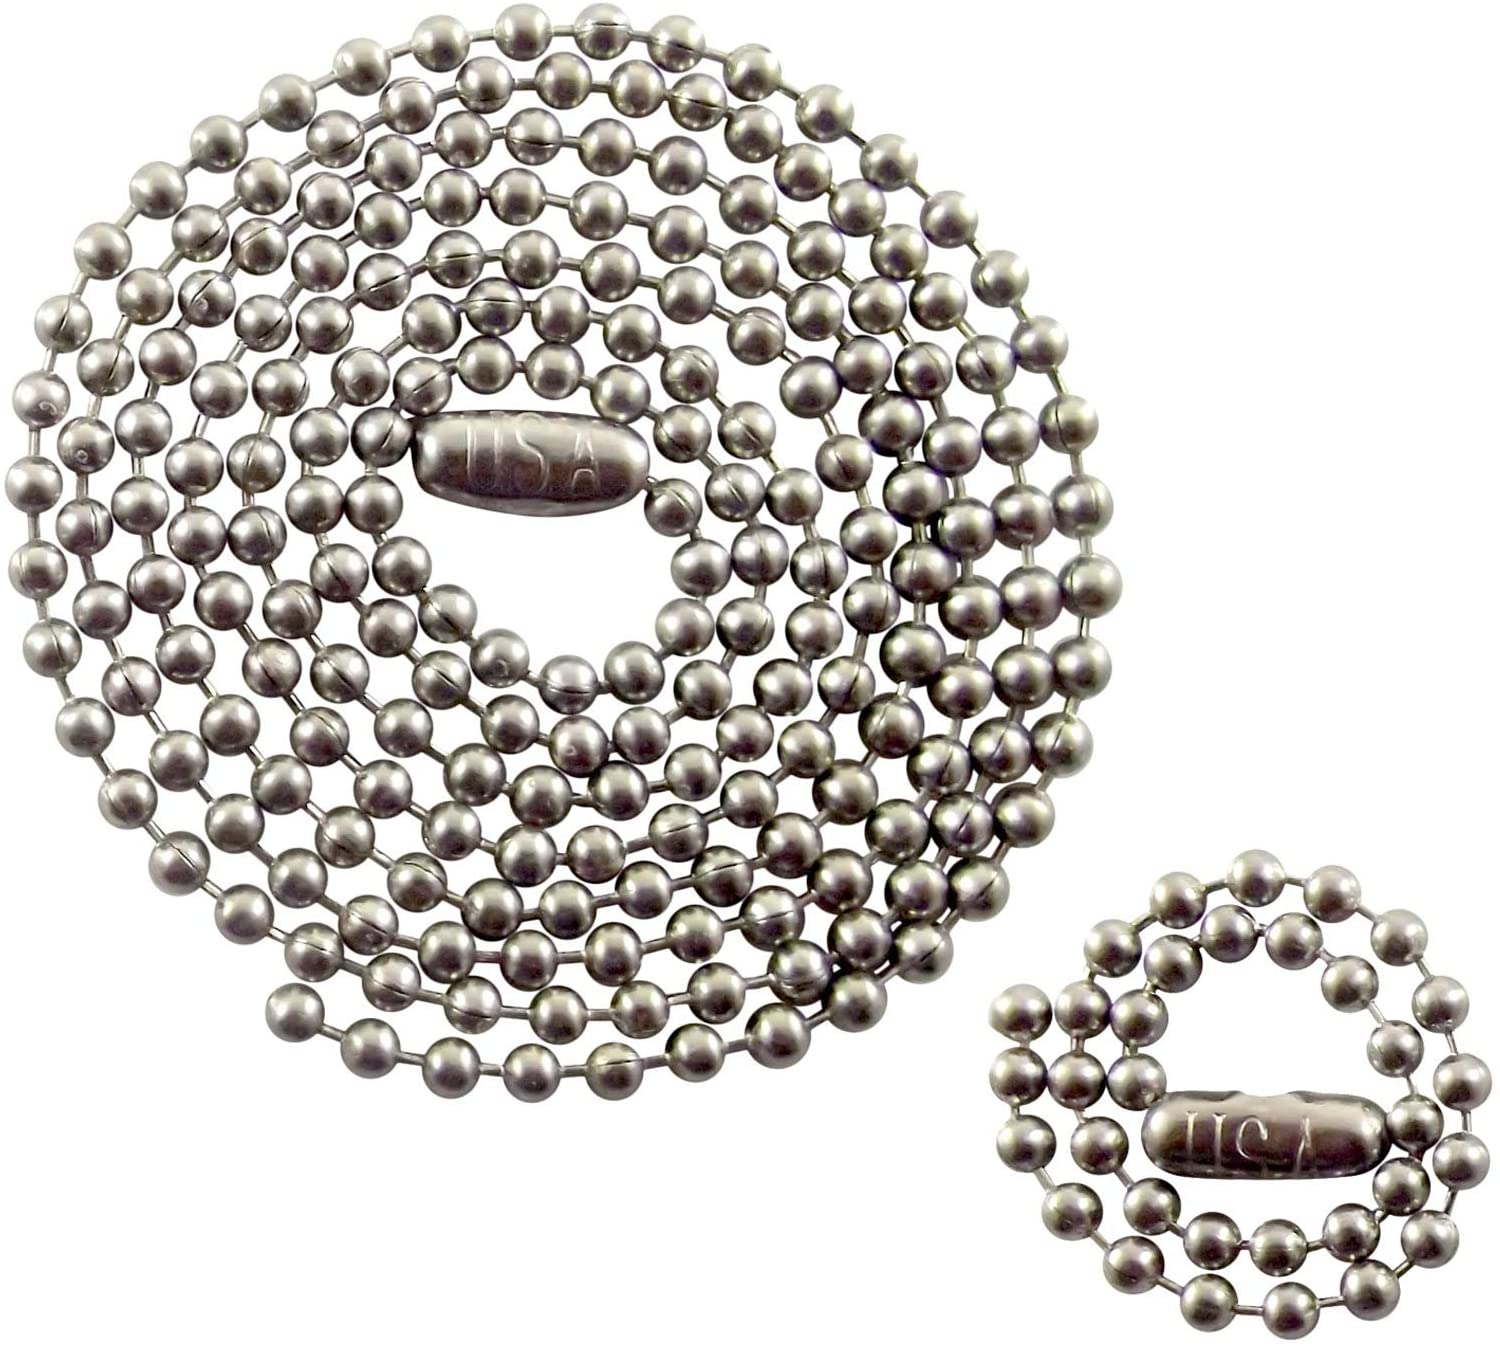 Tag-Z Stainless Steel Dog Tag